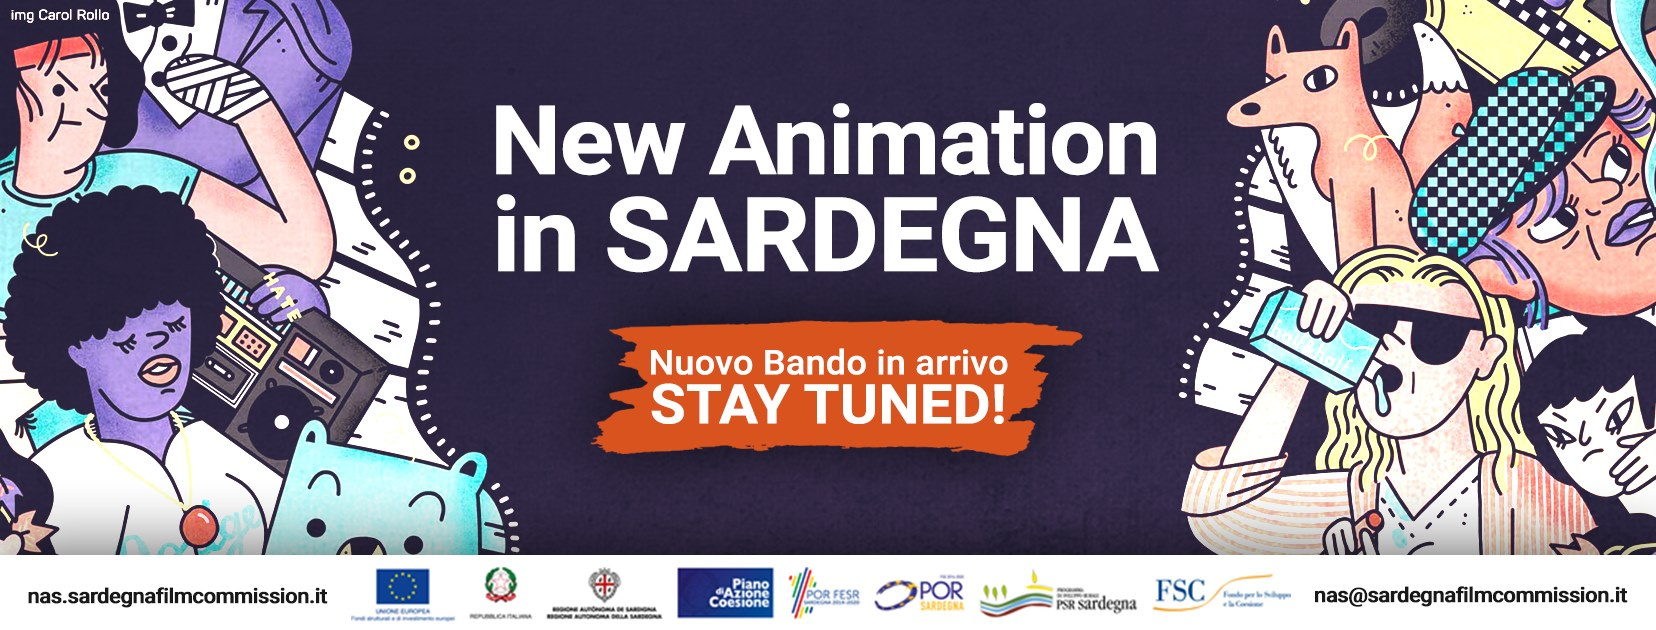 new animation in sardegna film commission